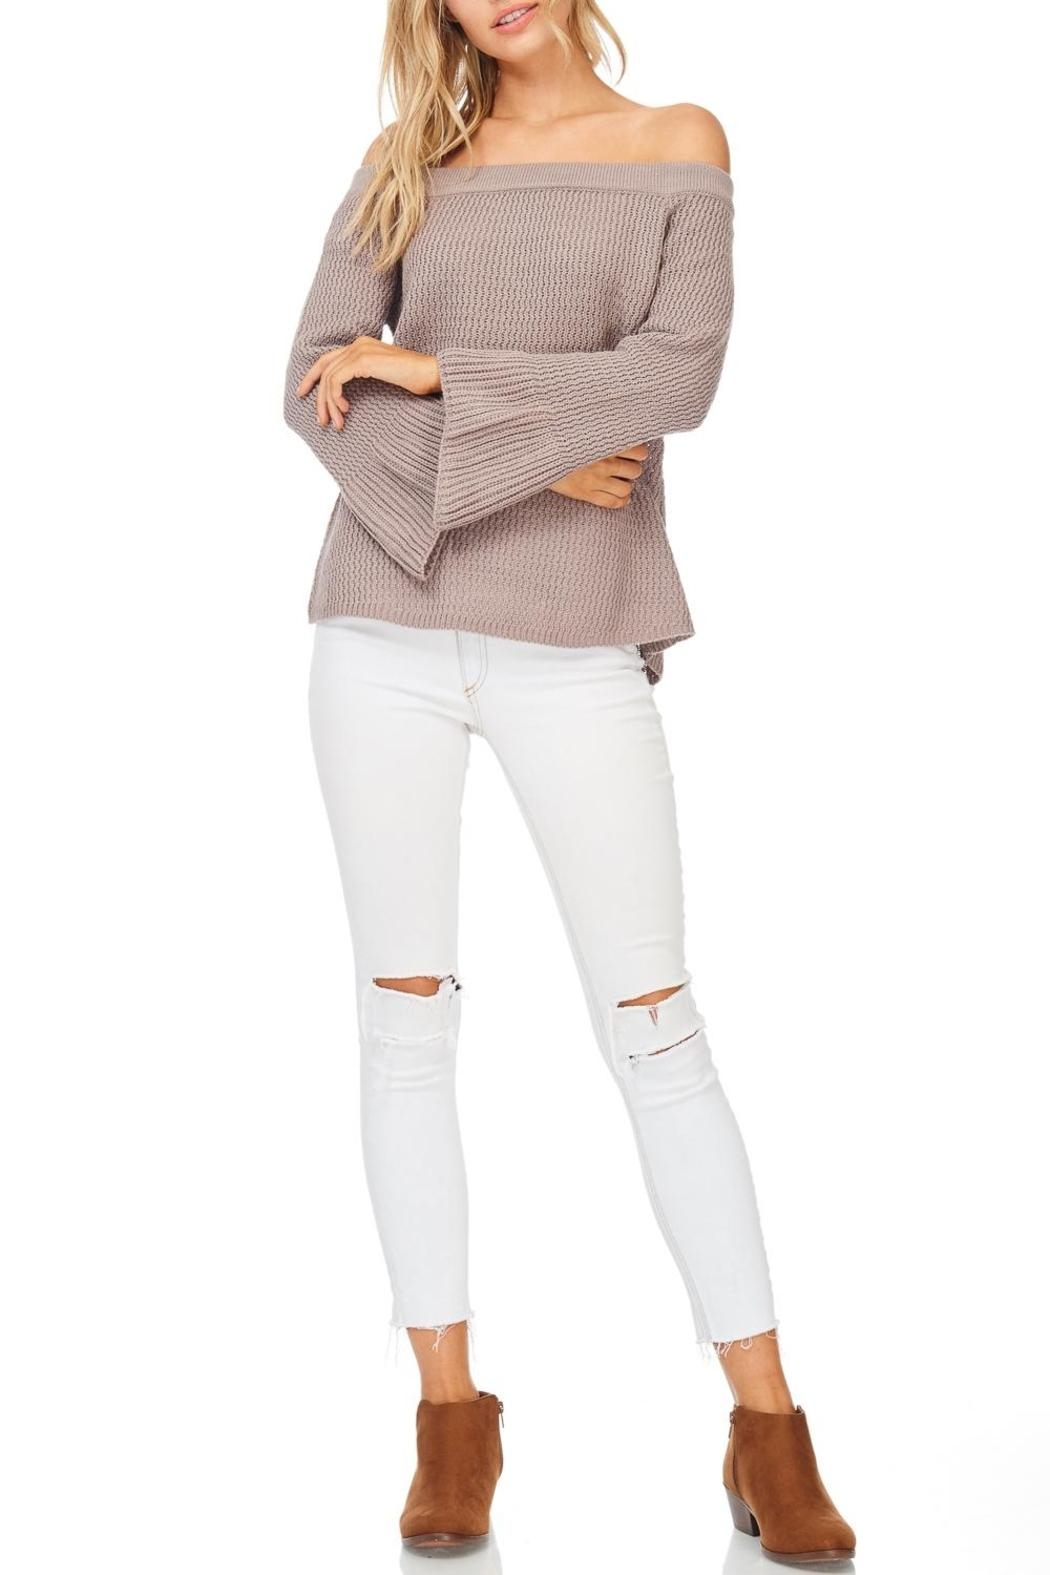 LoveRiche Mocha Off Shoulder Sweater - Main Image